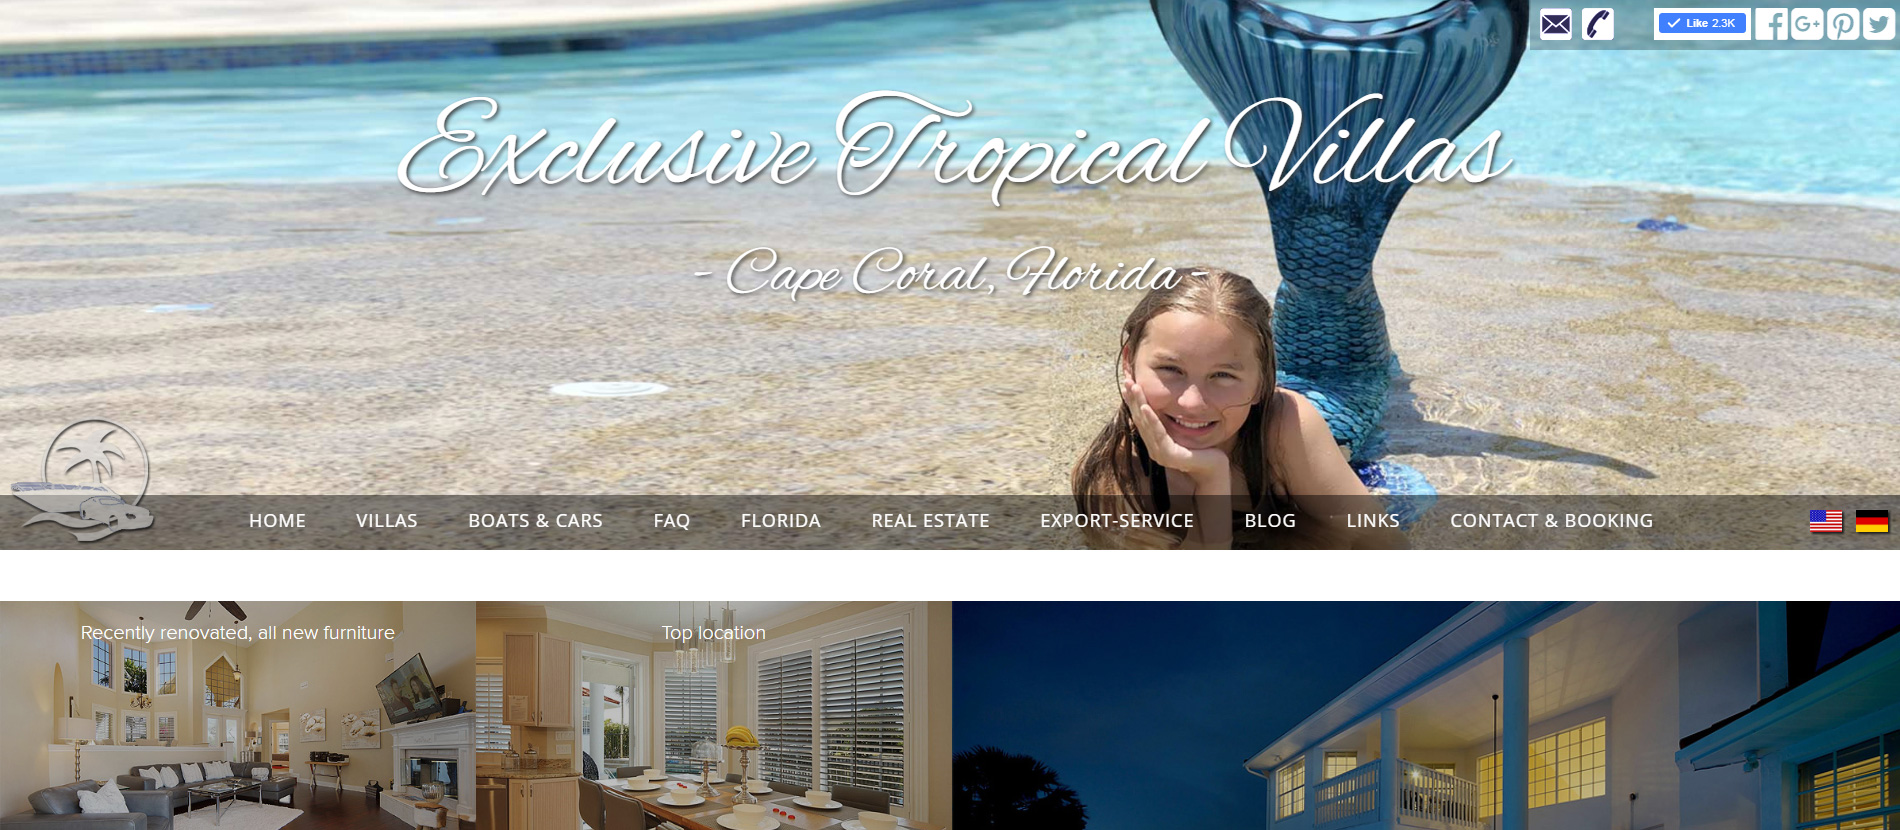 Exclusive Tropical Villas